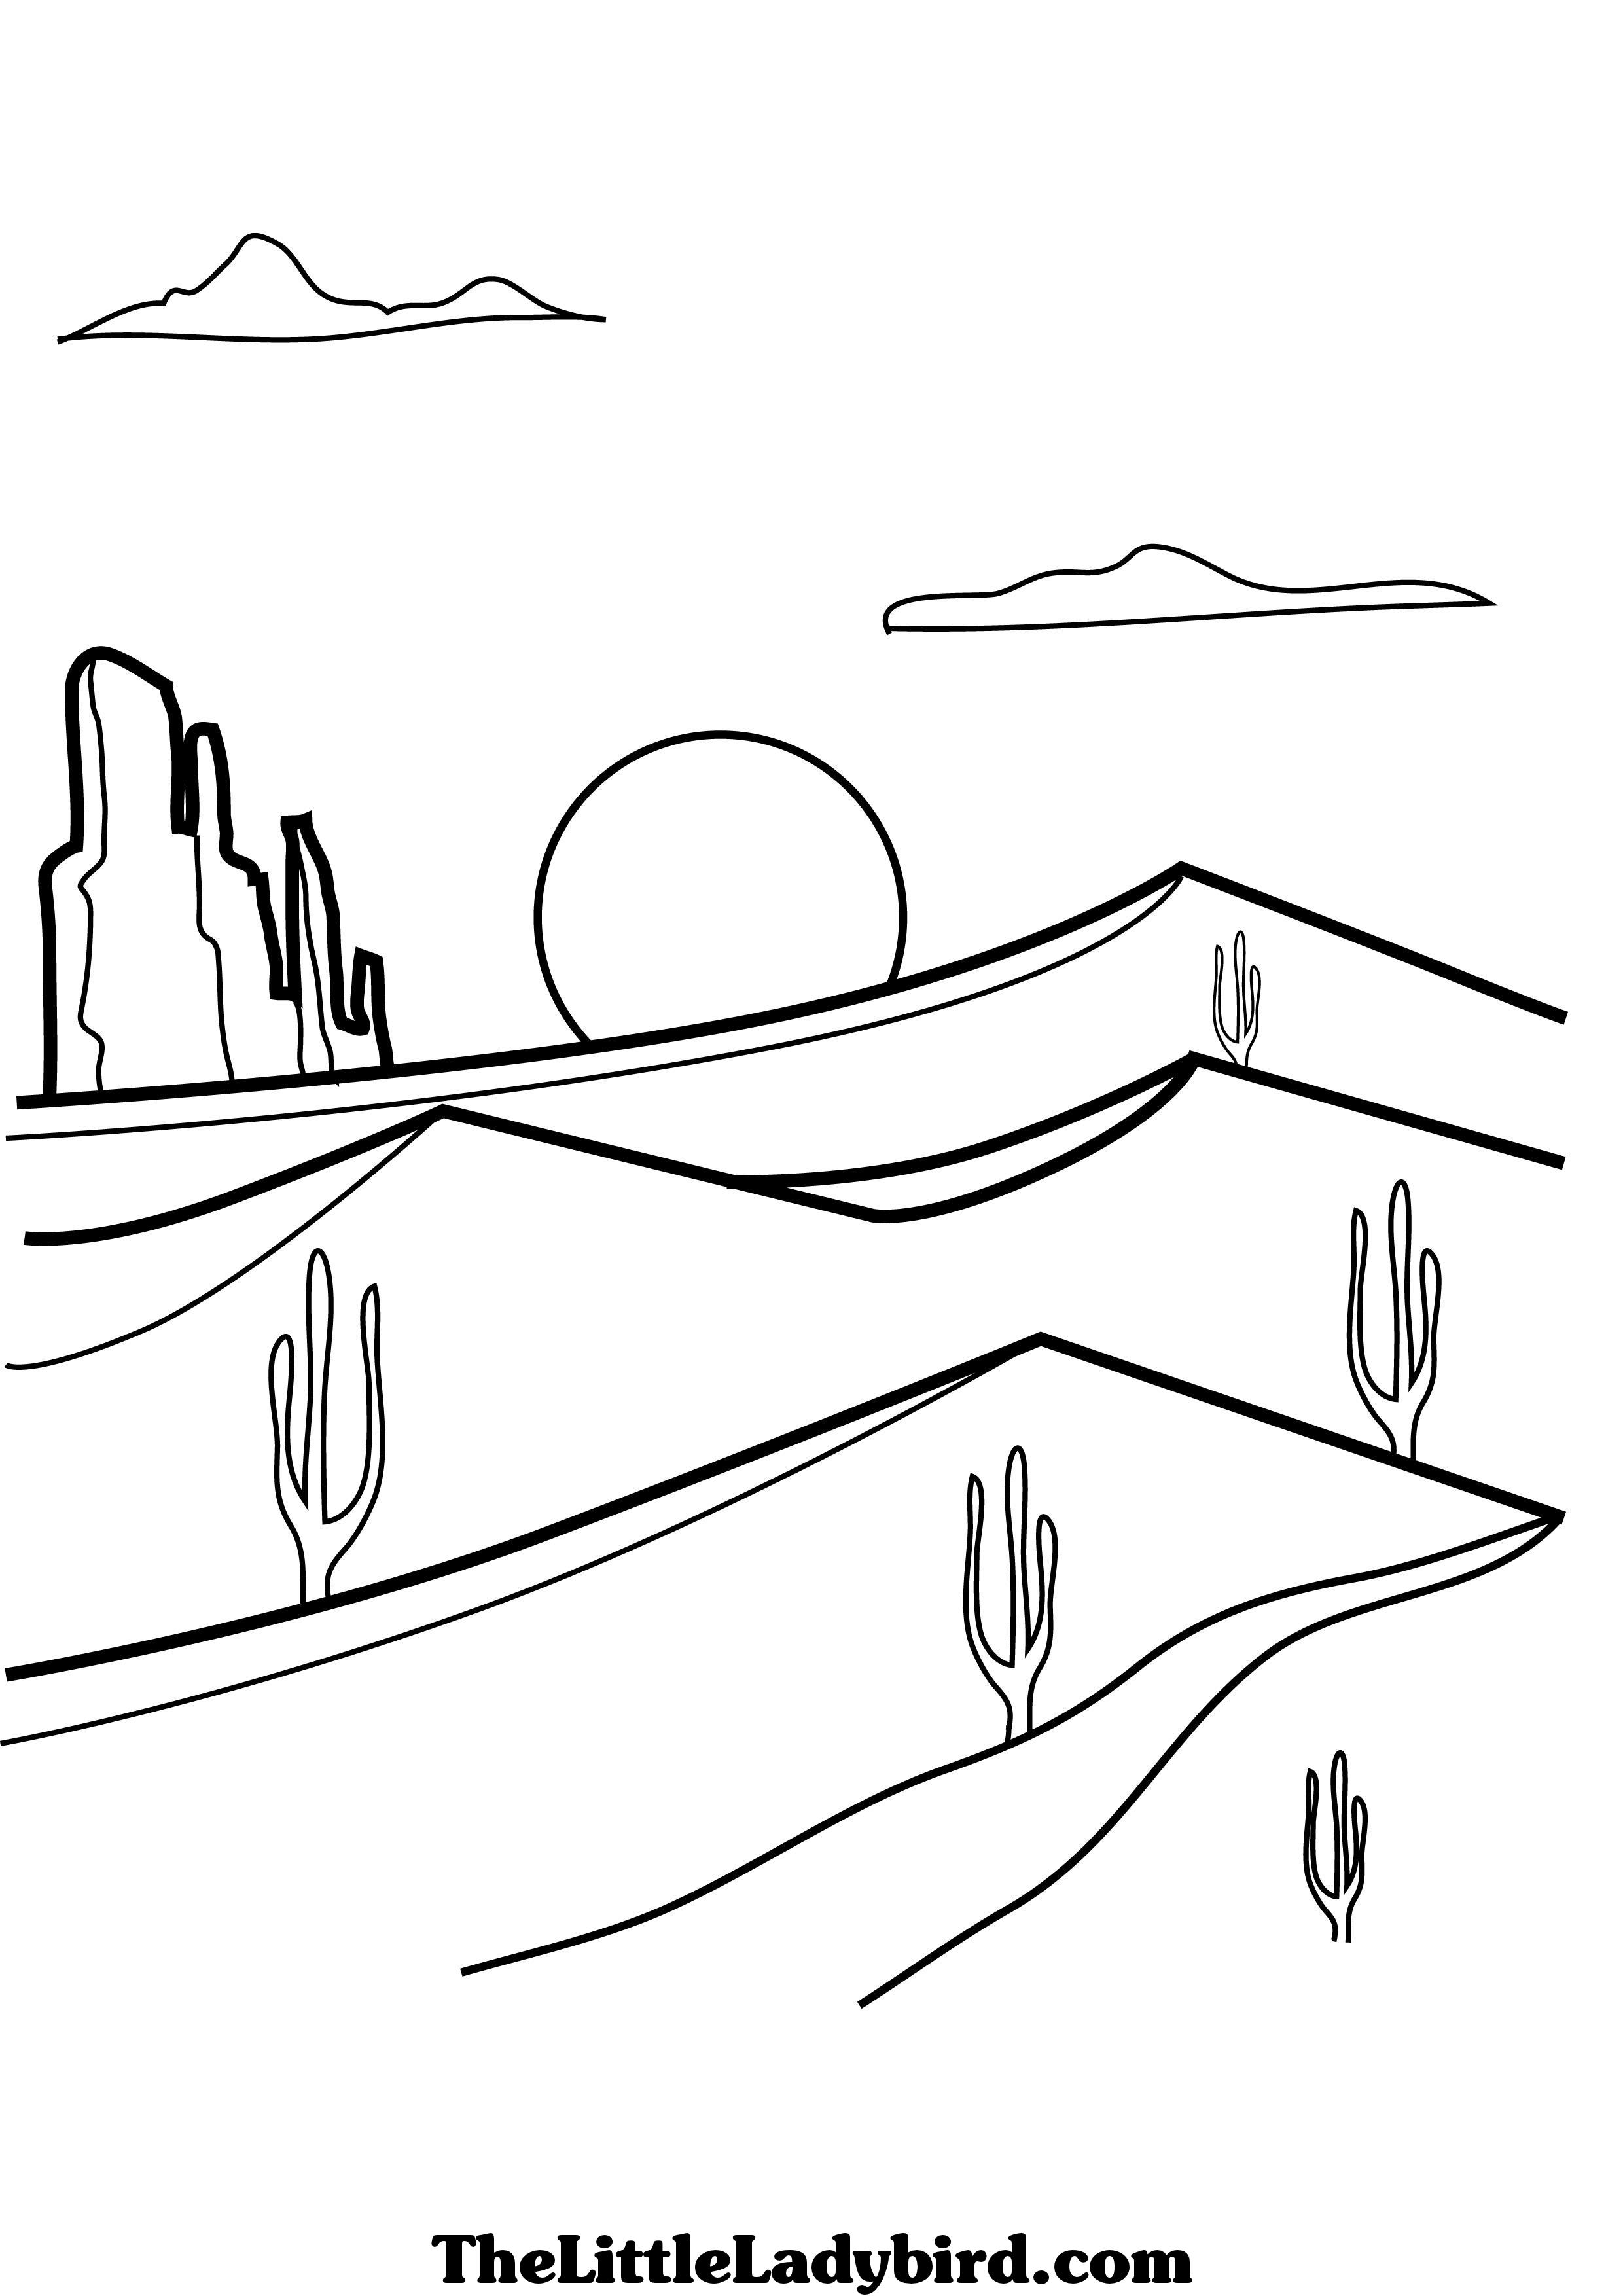 Desert Free Online Coloring Color On Pages Coloring Desert Coloring Pages